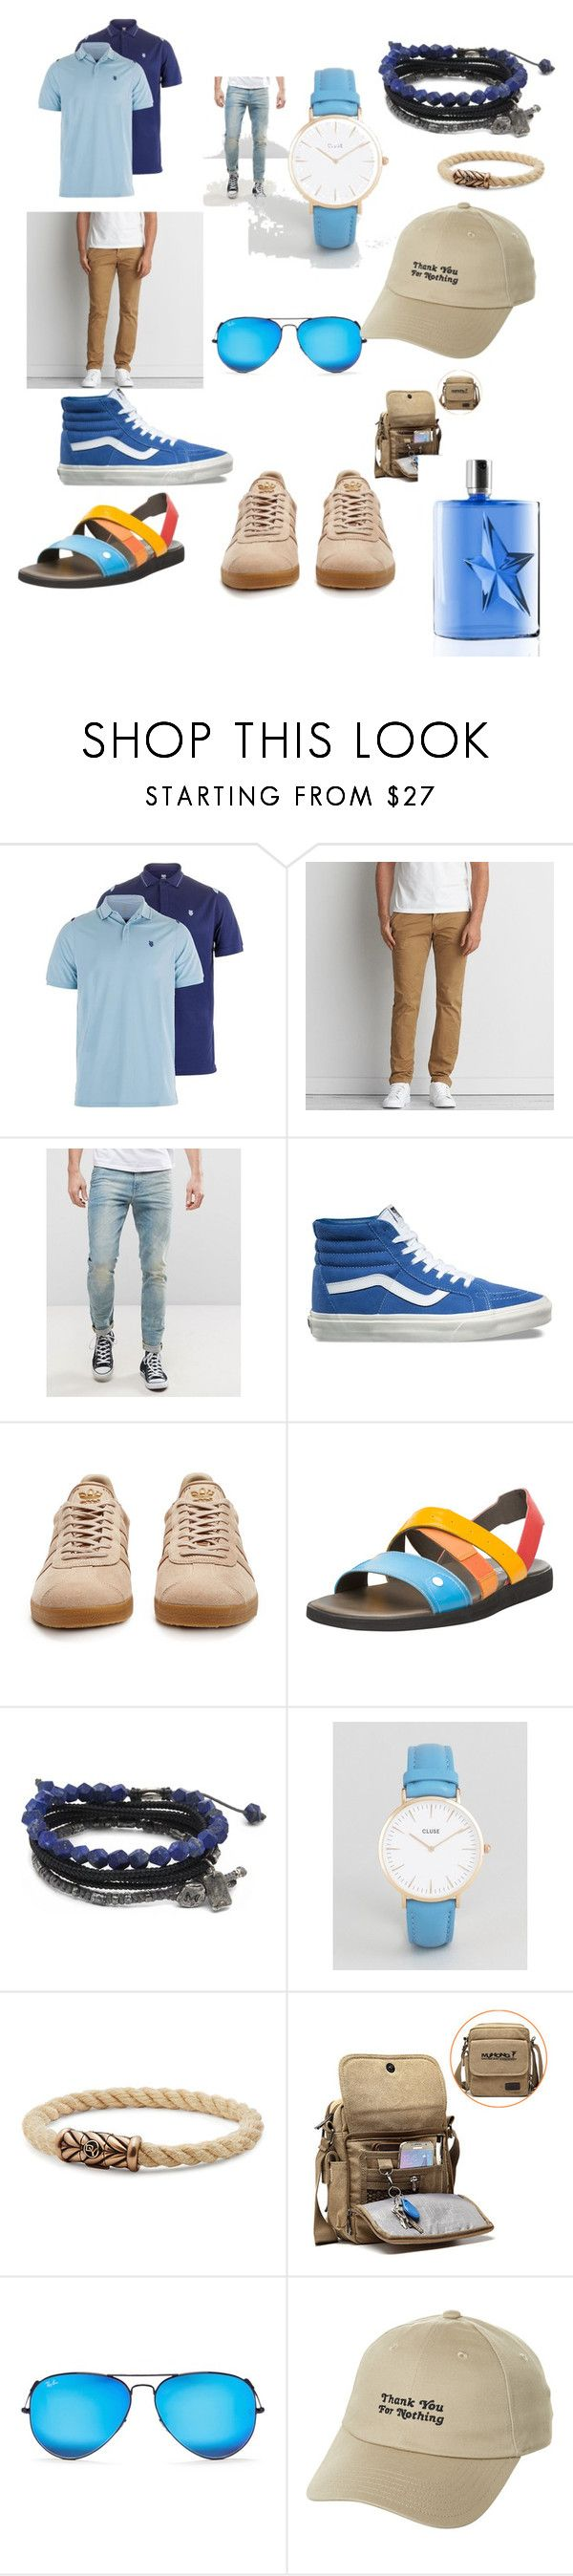 """""""#be #cool#fun#fashone#trend#moda#"""" by hannazakaria ❤ liked on Polyvore featuring American Eagle Outfitters, ASOS, Vans, adidas Originals, Camper, M. Cohen, CLUSE, David Yurman, Ray-Ban and Thierry Mugler"""